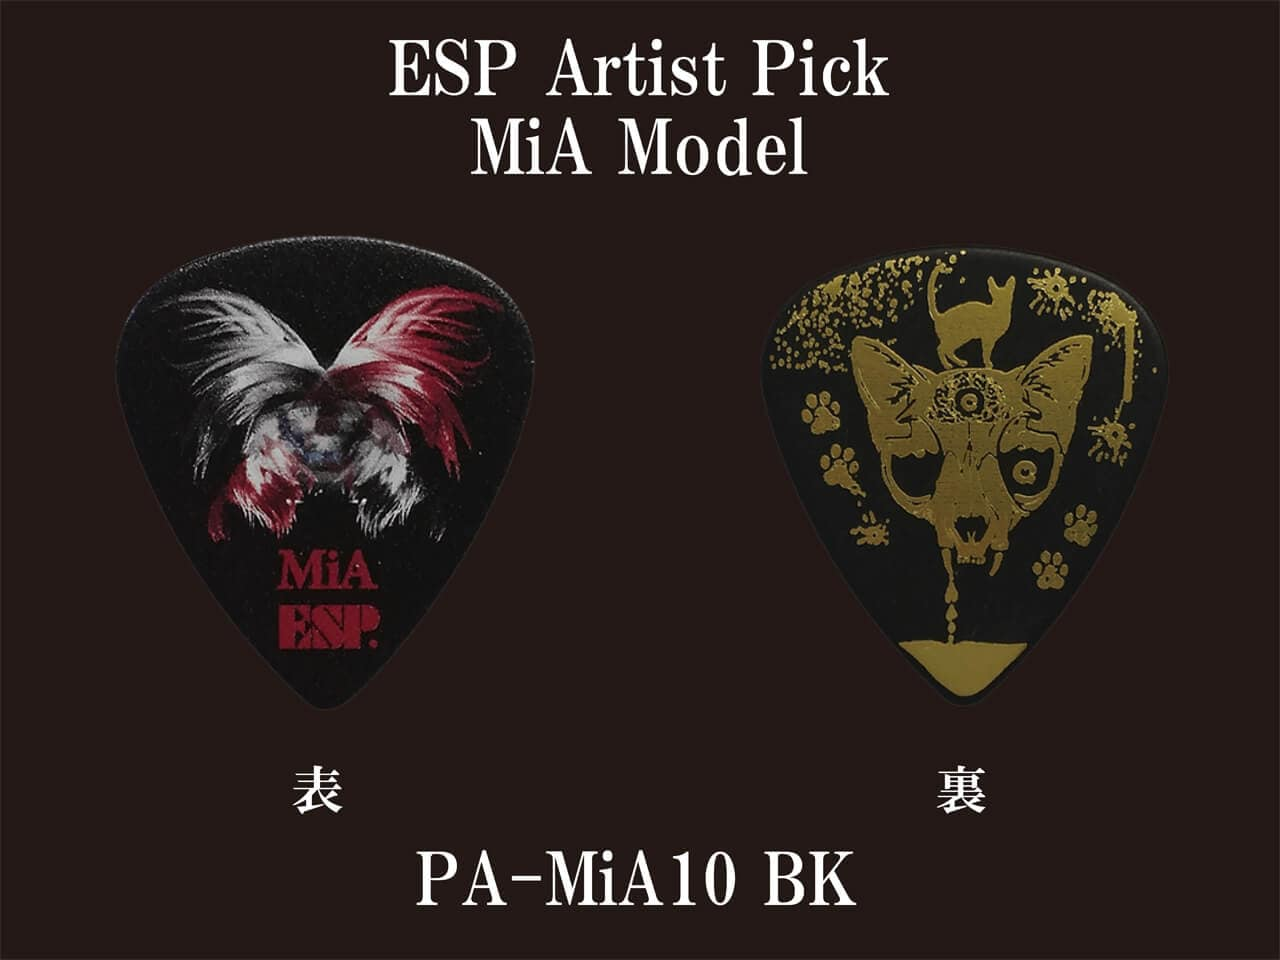 ESP(イーエスピー) Artist Pick Series PA-MiA10 BK (MiA Model)